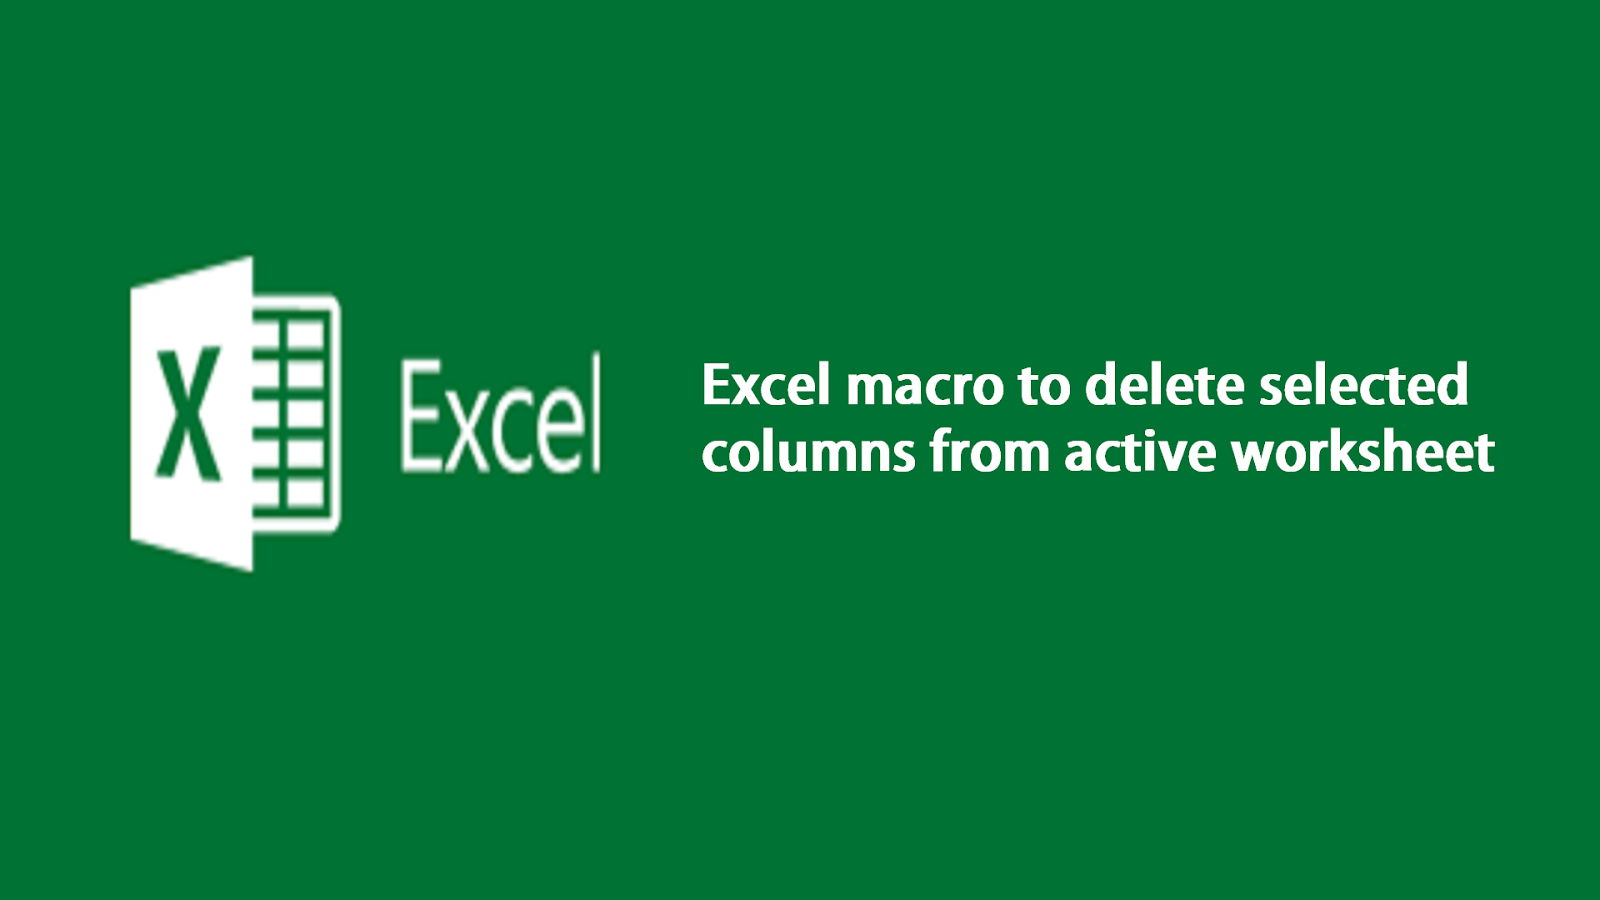 How To Delete Columns From Worksheet By Excel Macro